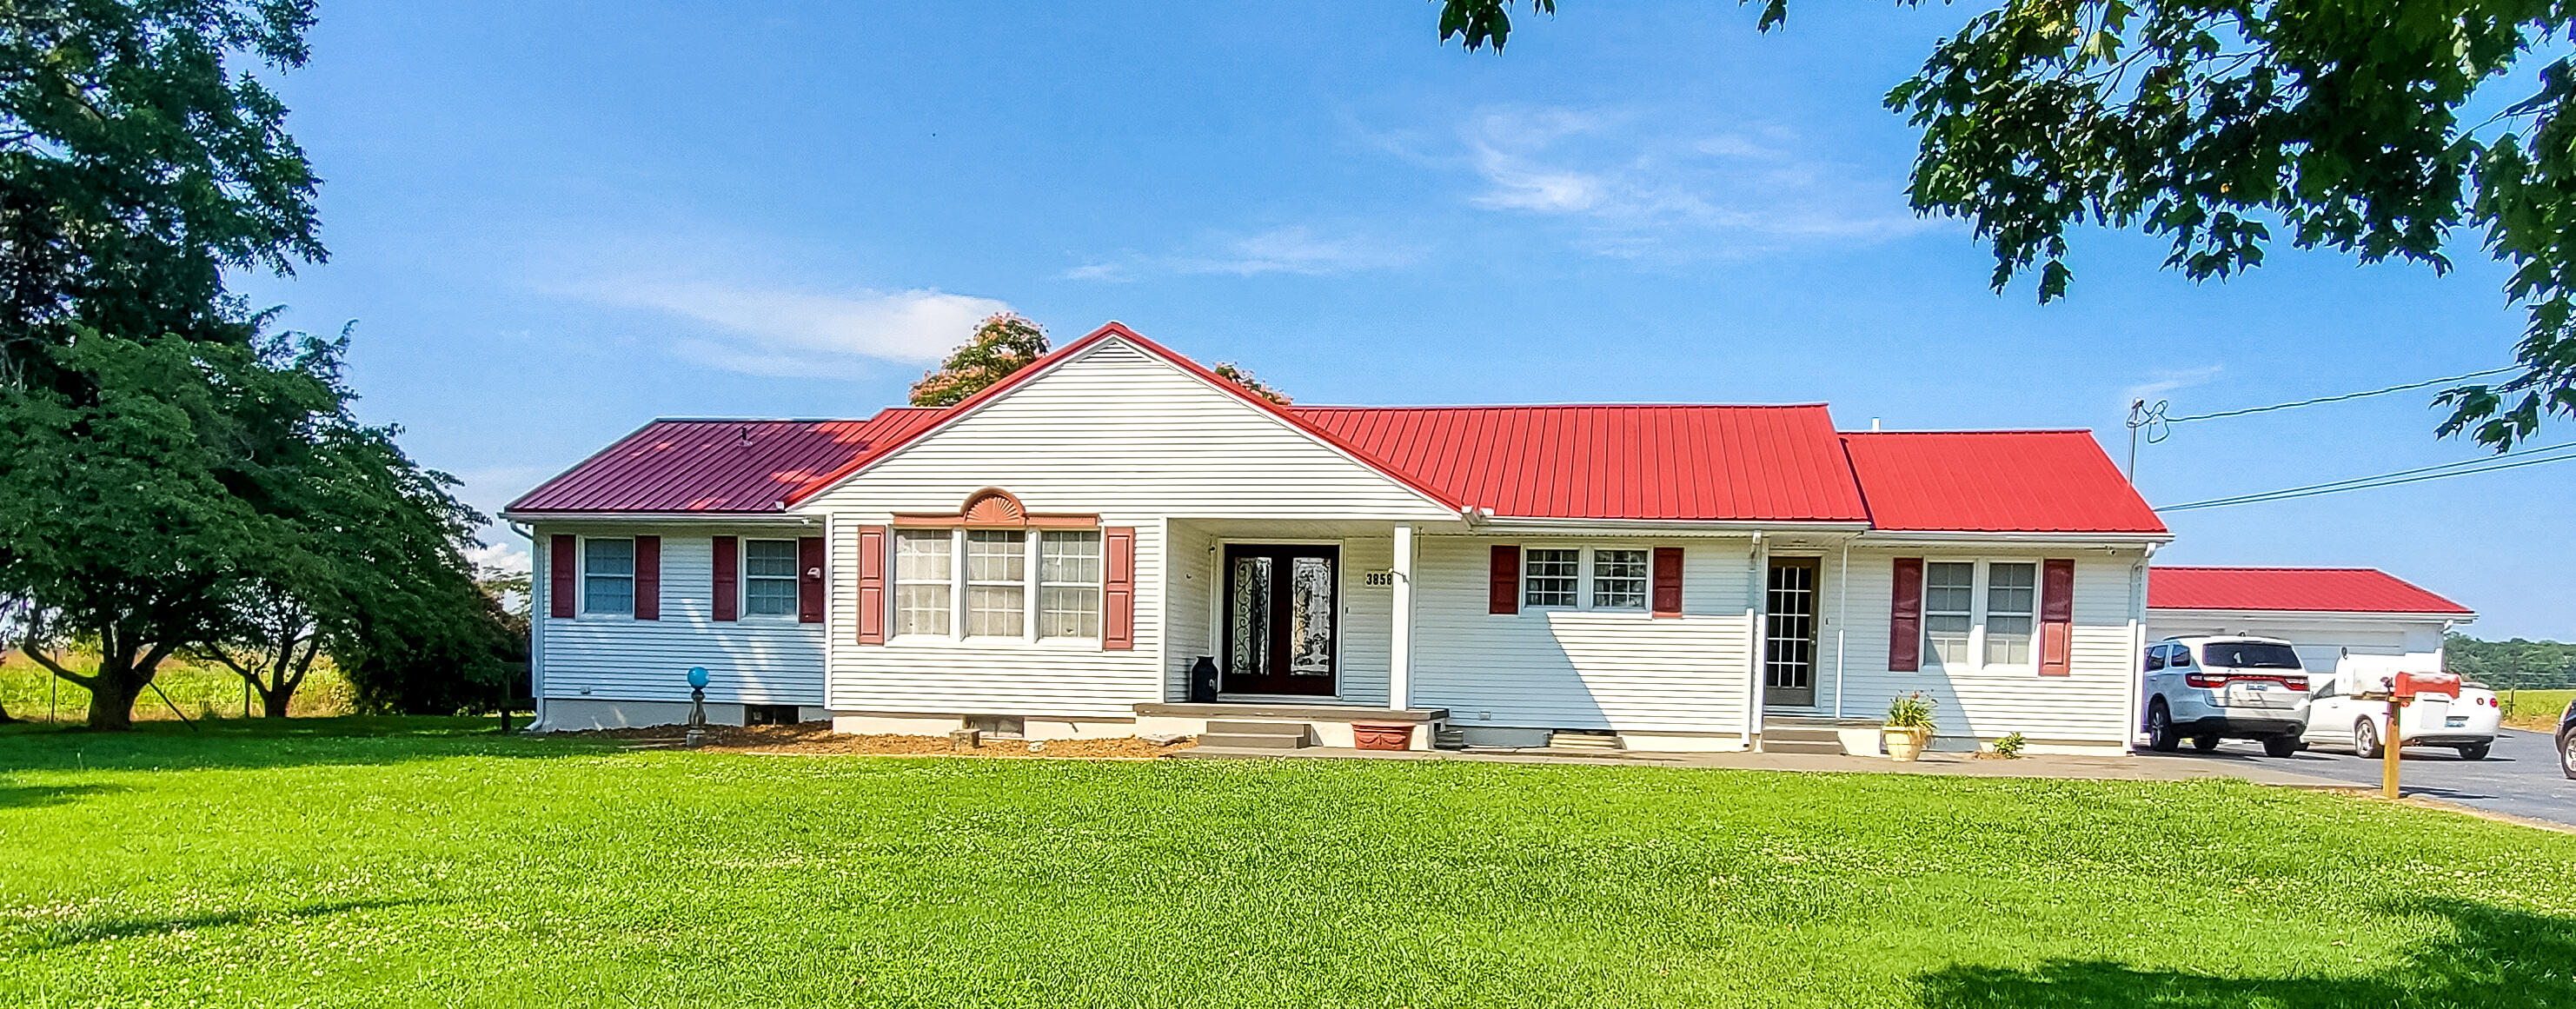 3858 W Highway 92, Monticello, KY 42633